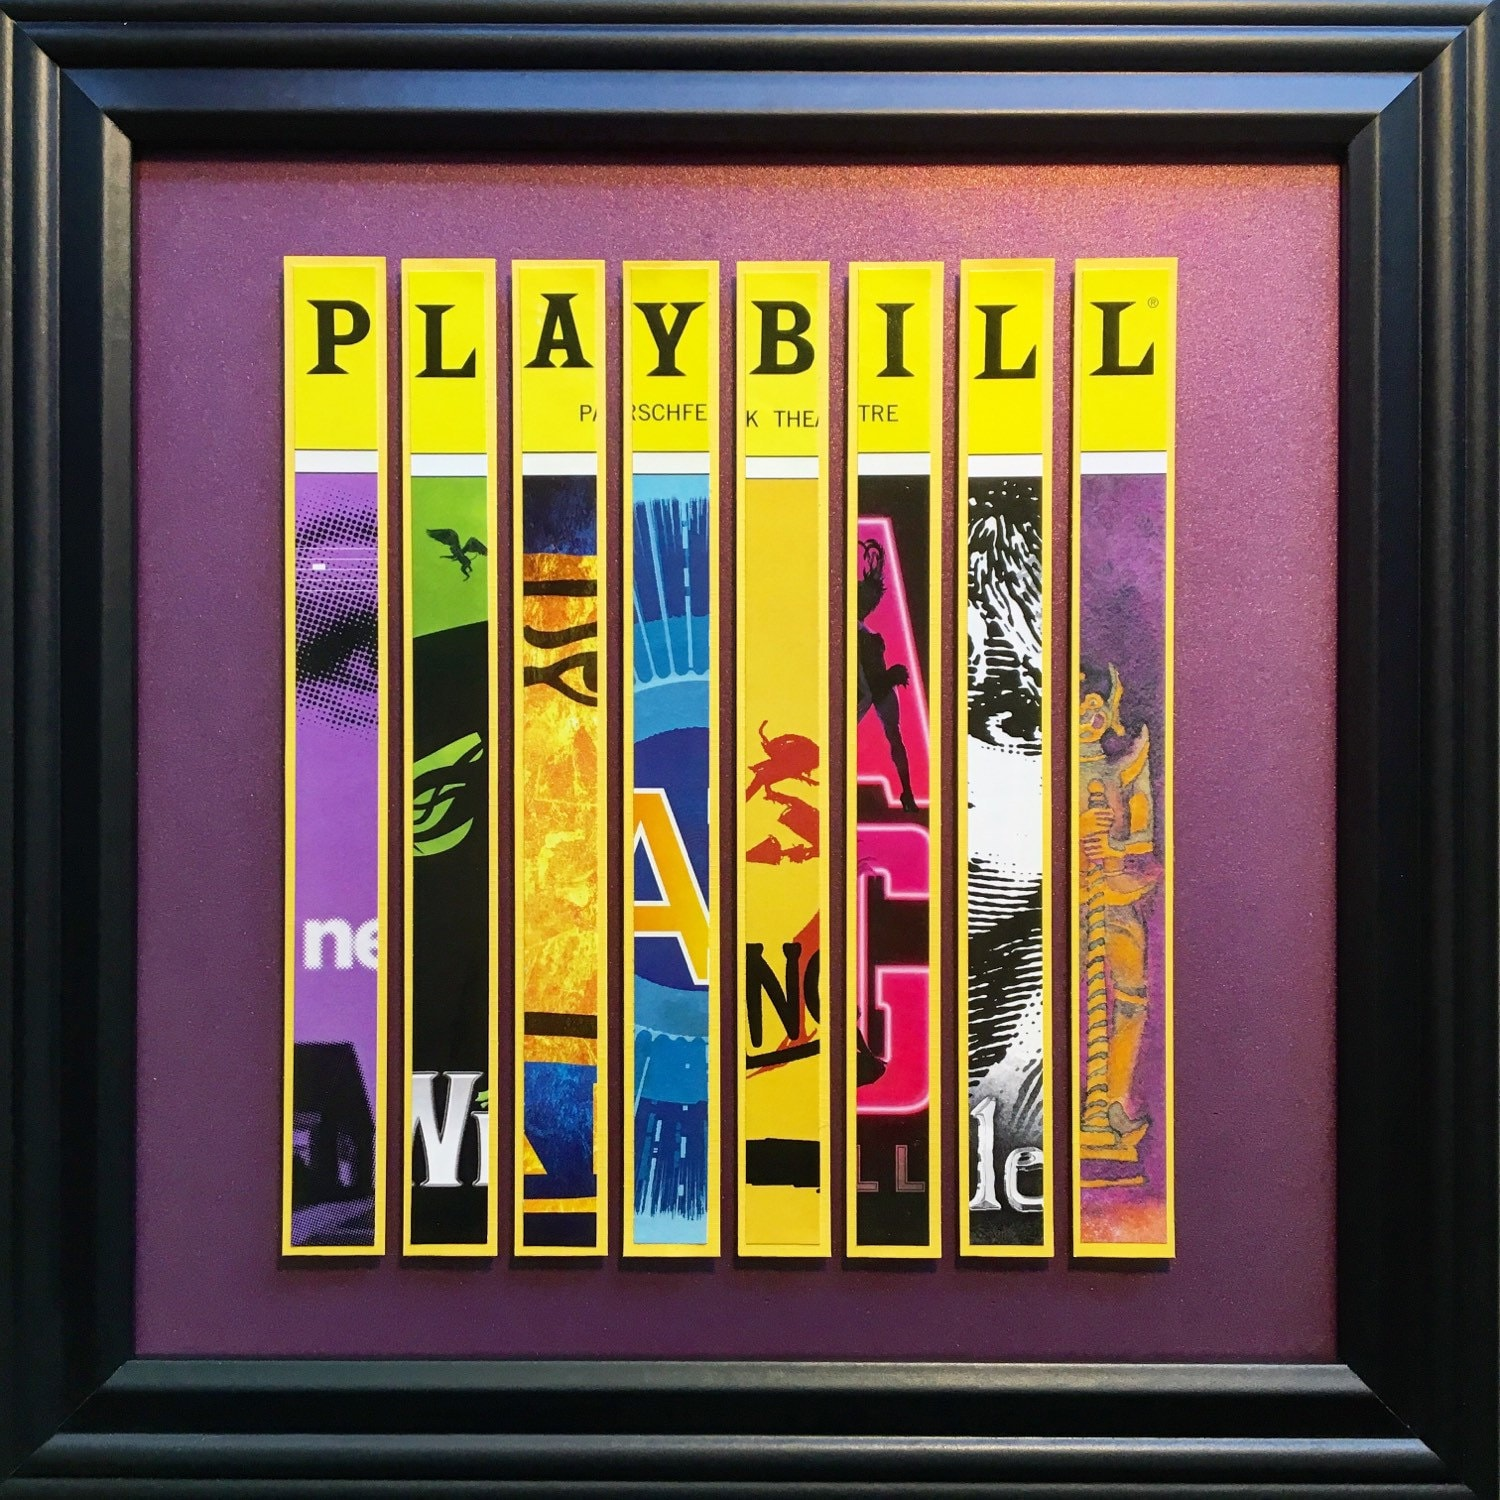 Custom Broadway Playbill Framed Art Collage Personalize It | Etsy